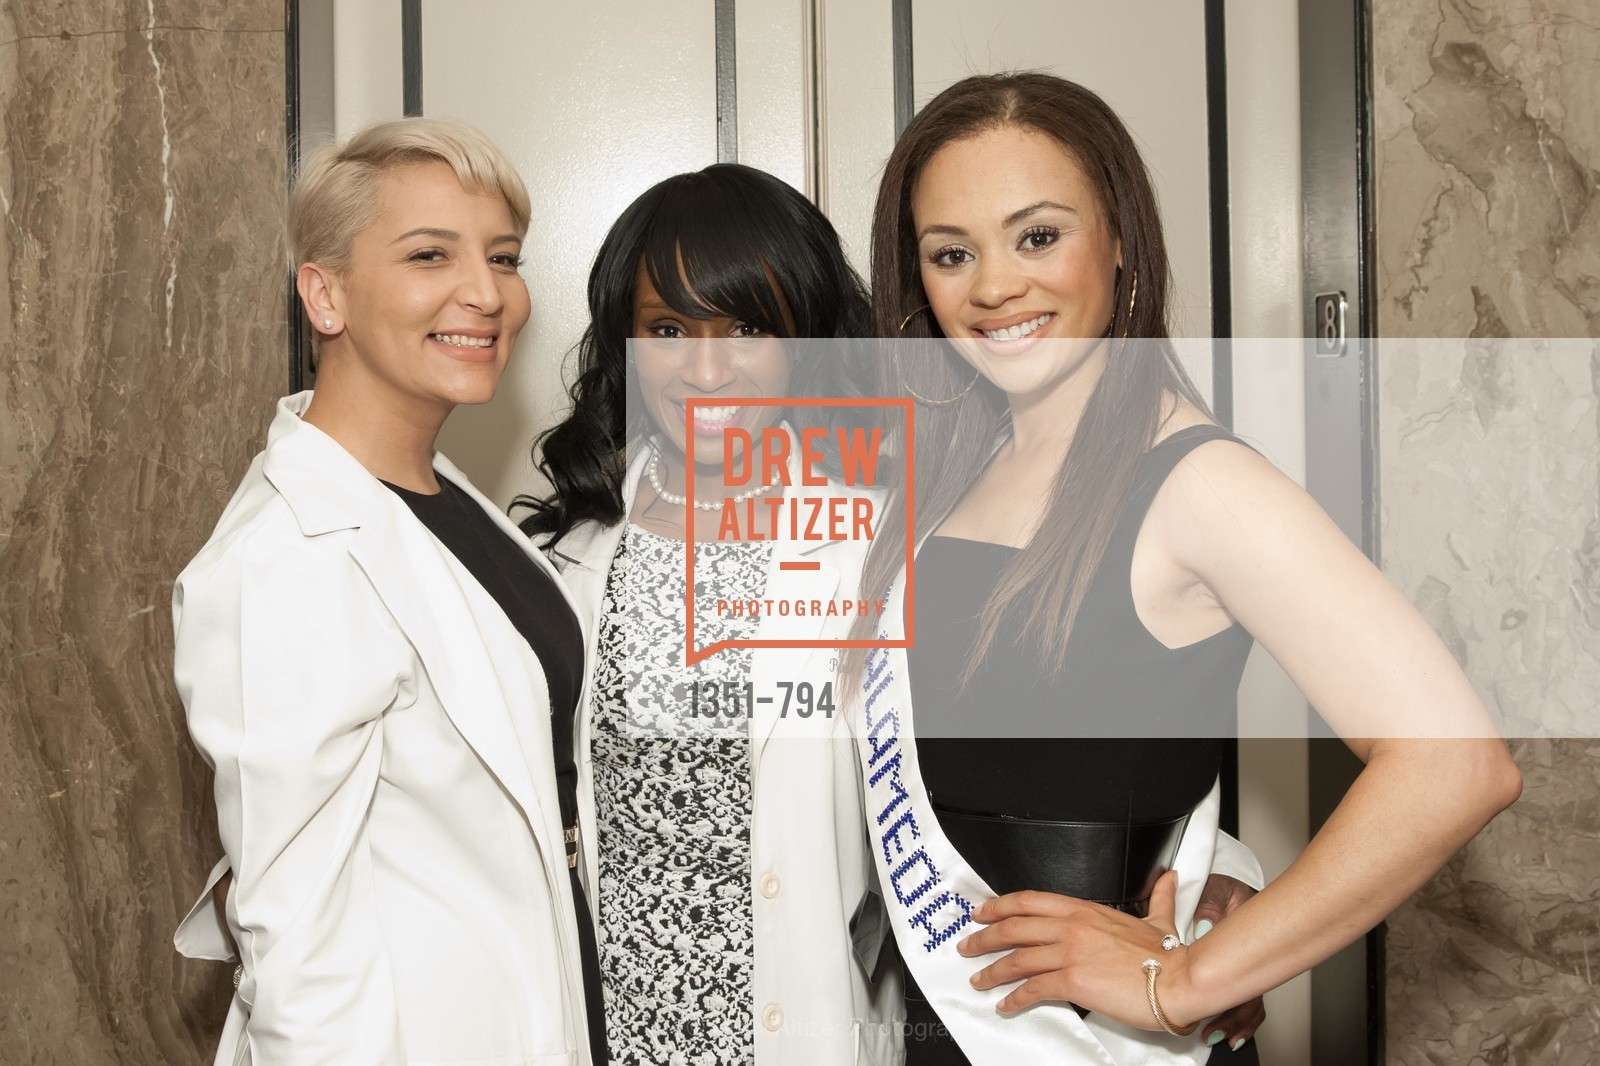 Inessa Samodeeva, Pernella Sommerville, Jessica Robinson, EPI CENTER MedSpa Anniversary and Launch of REPLETE - Evening Celebration, US, April 22nd, 2015,Drew Altizer, Drew Altizer Photography, full-service event agency, private events, San Francisco photographer, photographer California